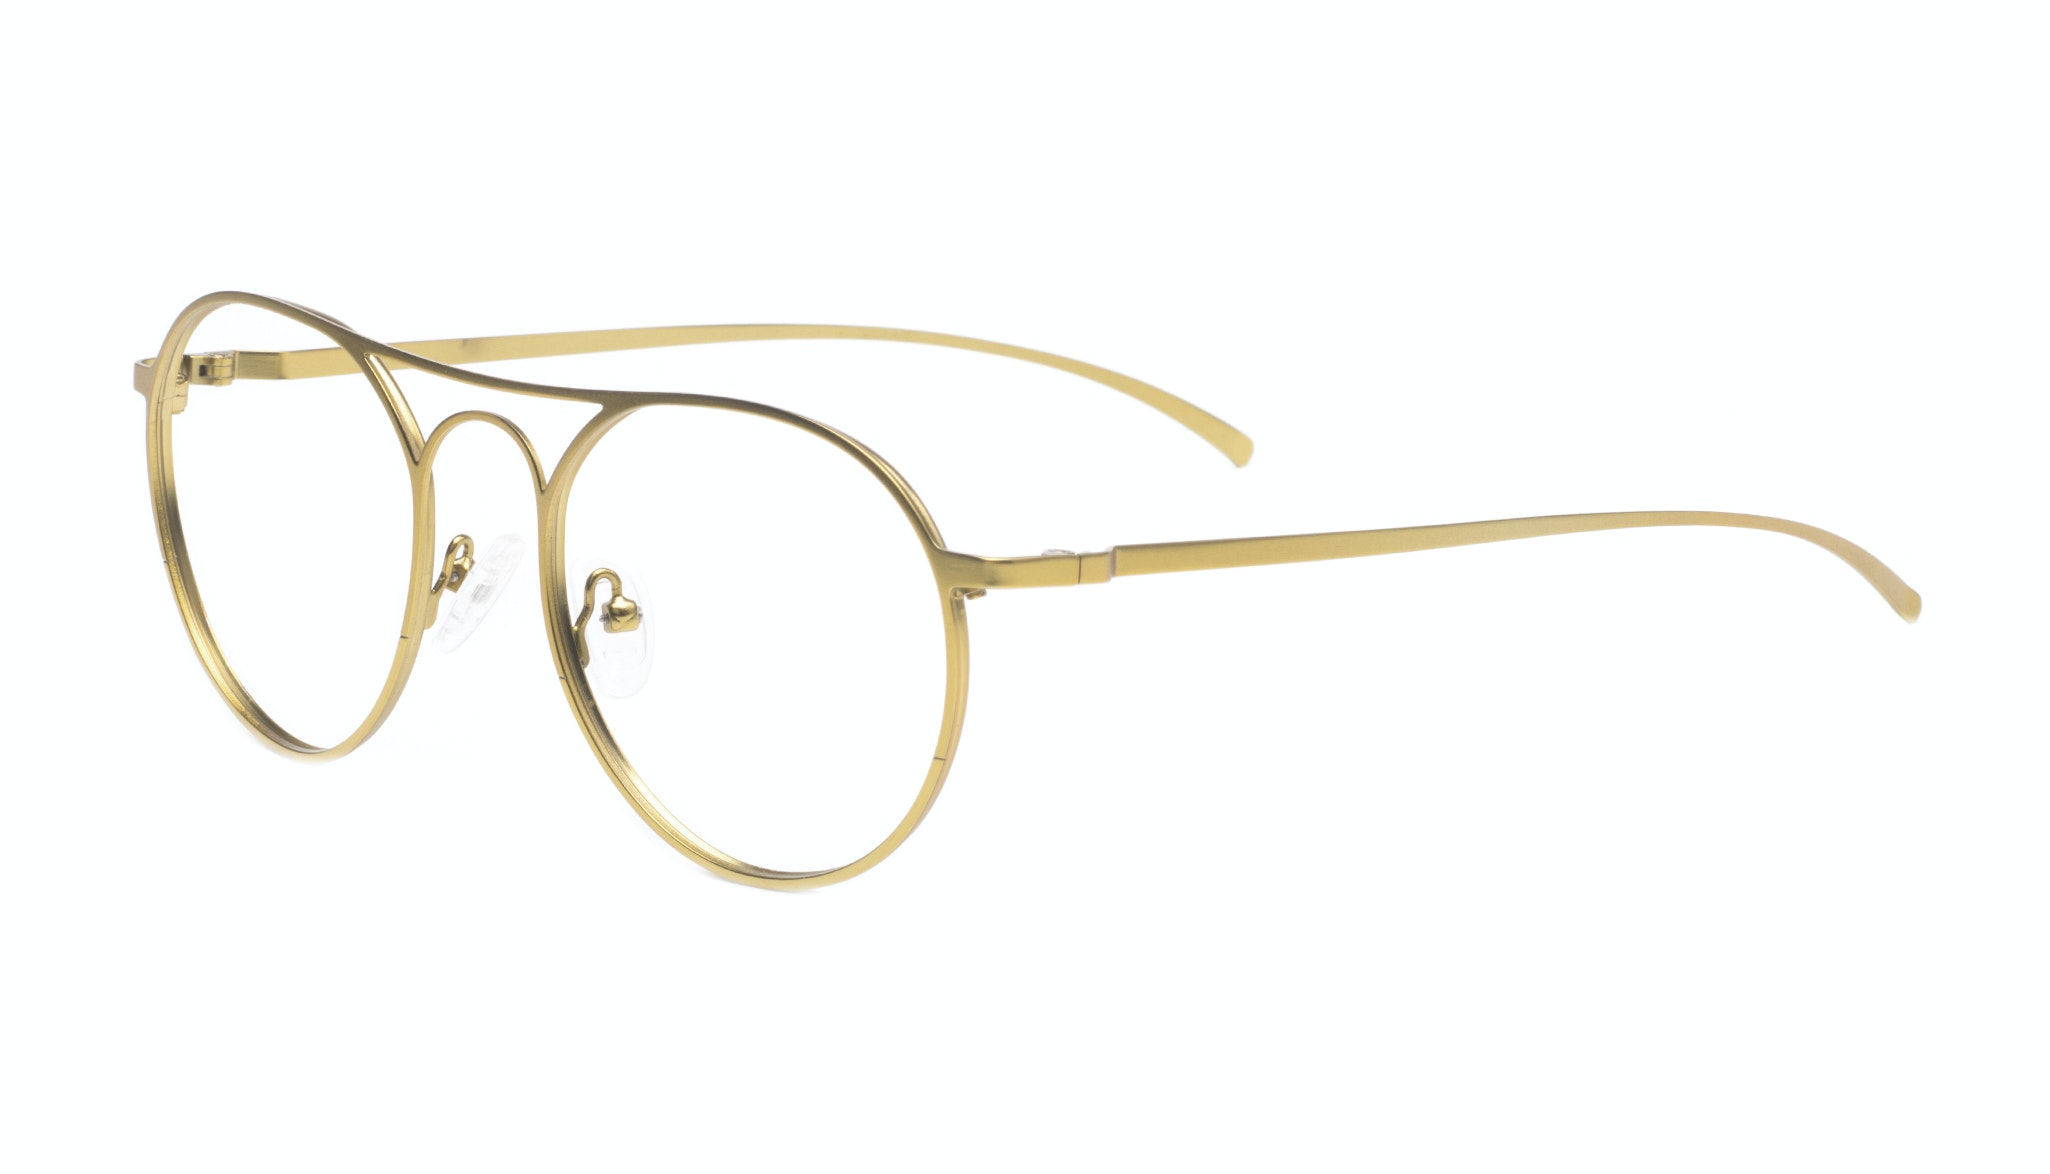 Affordable Fashion Glasses Aviator Round Eyeglasses Men Contour Gold Tilt